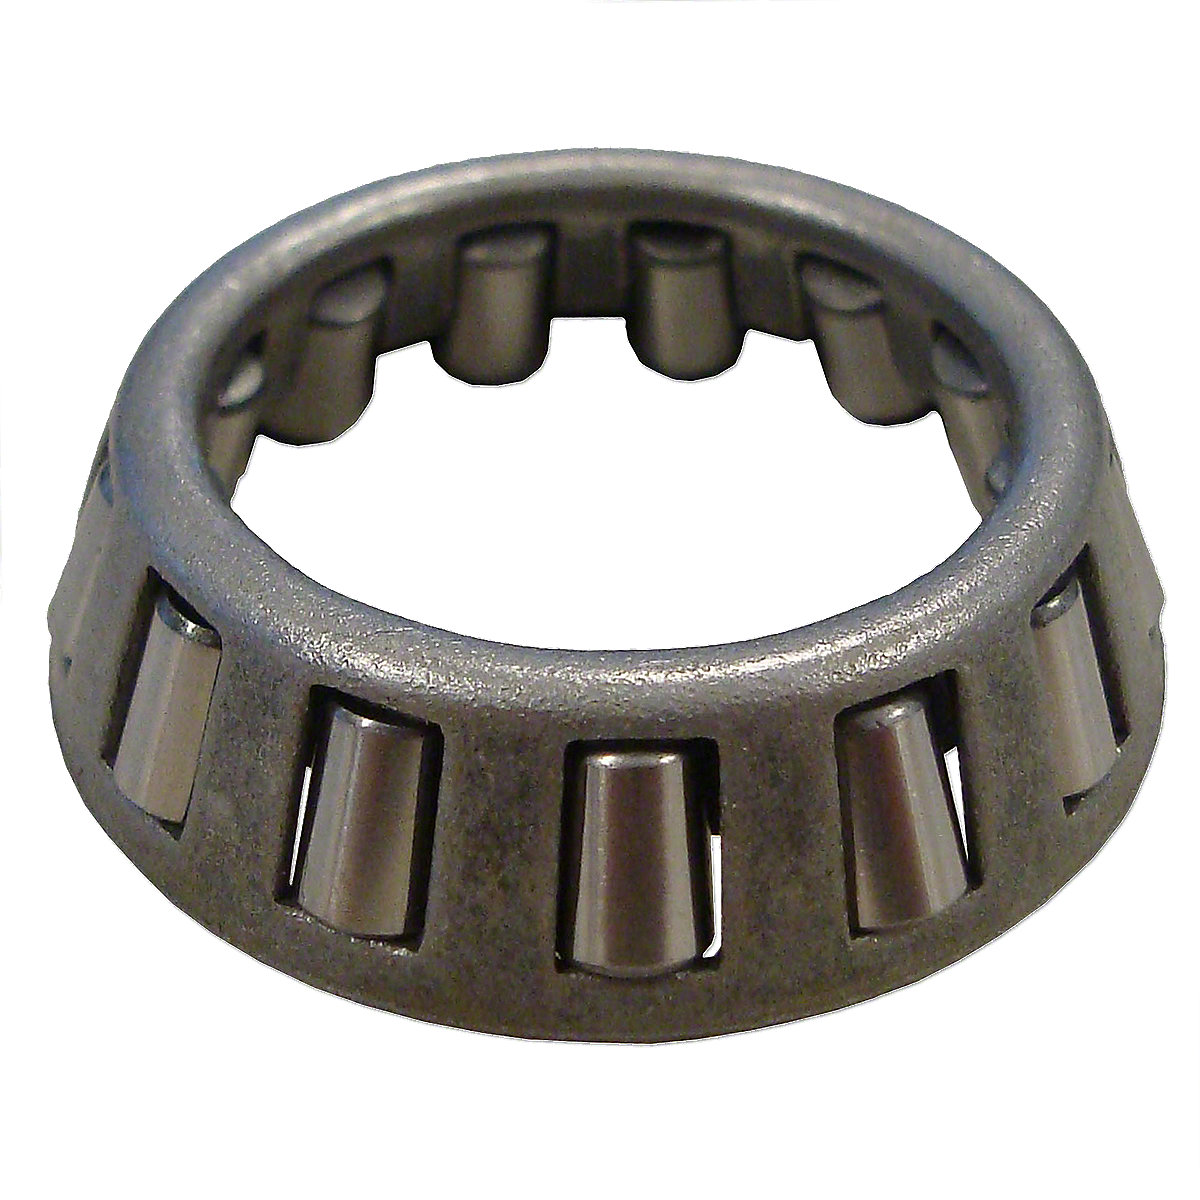 Steering Worm Shaft Bearing For Allis Chalmers: D14, D15, D17, D19.